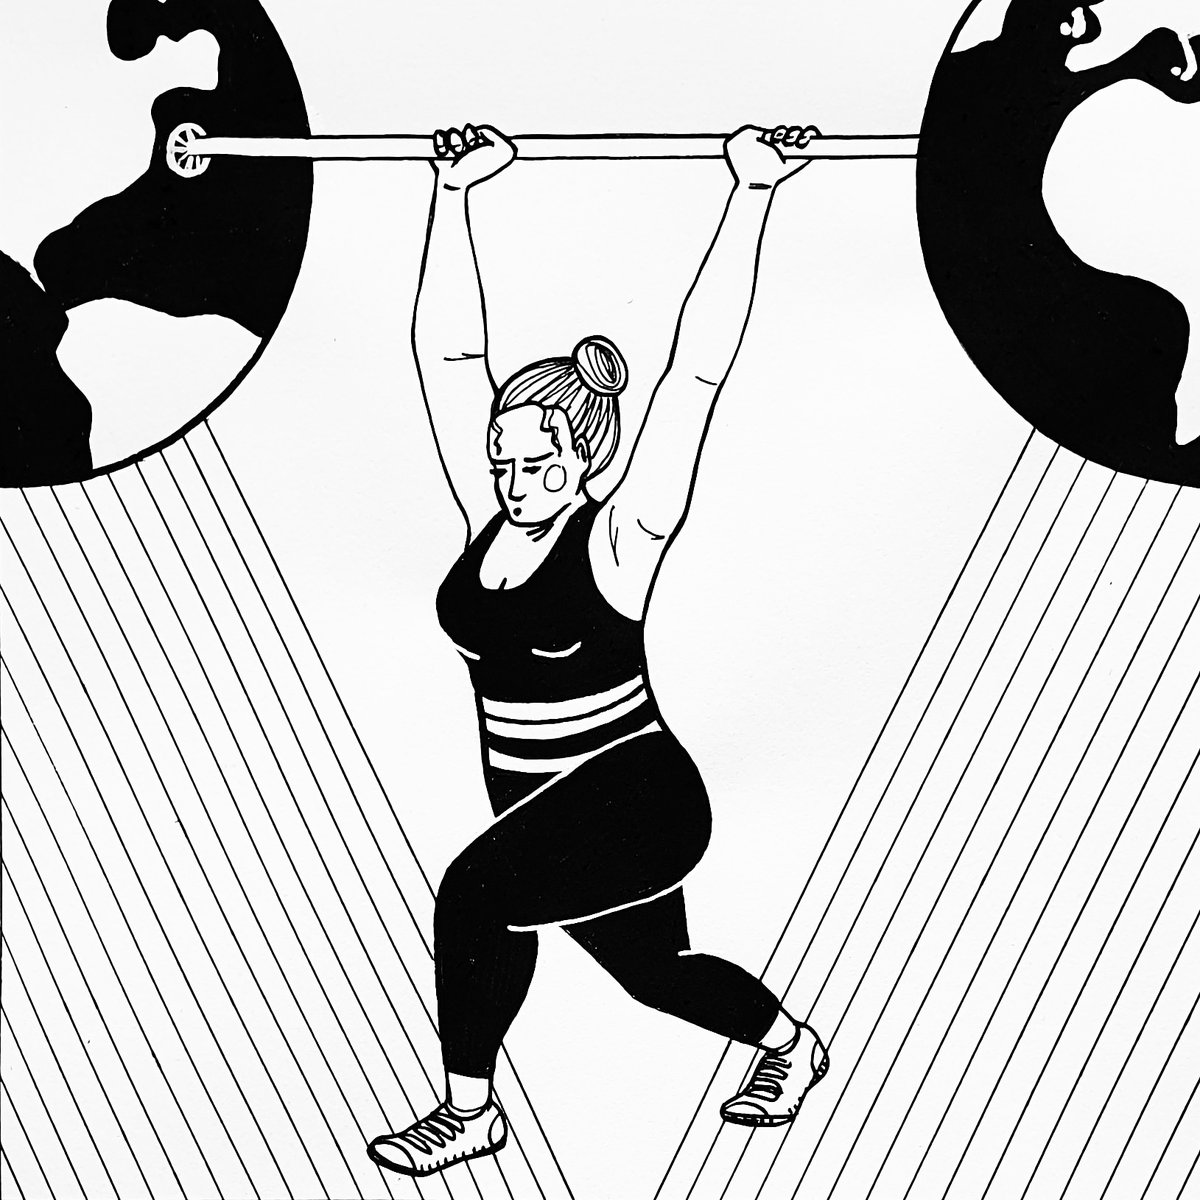 2nd in my A2Z of bodies drawing challenge is B for Bodybuilder!   #editorialillustration  #illustrationartist<br>http://pic.twitter.com/ApjMrBwiML